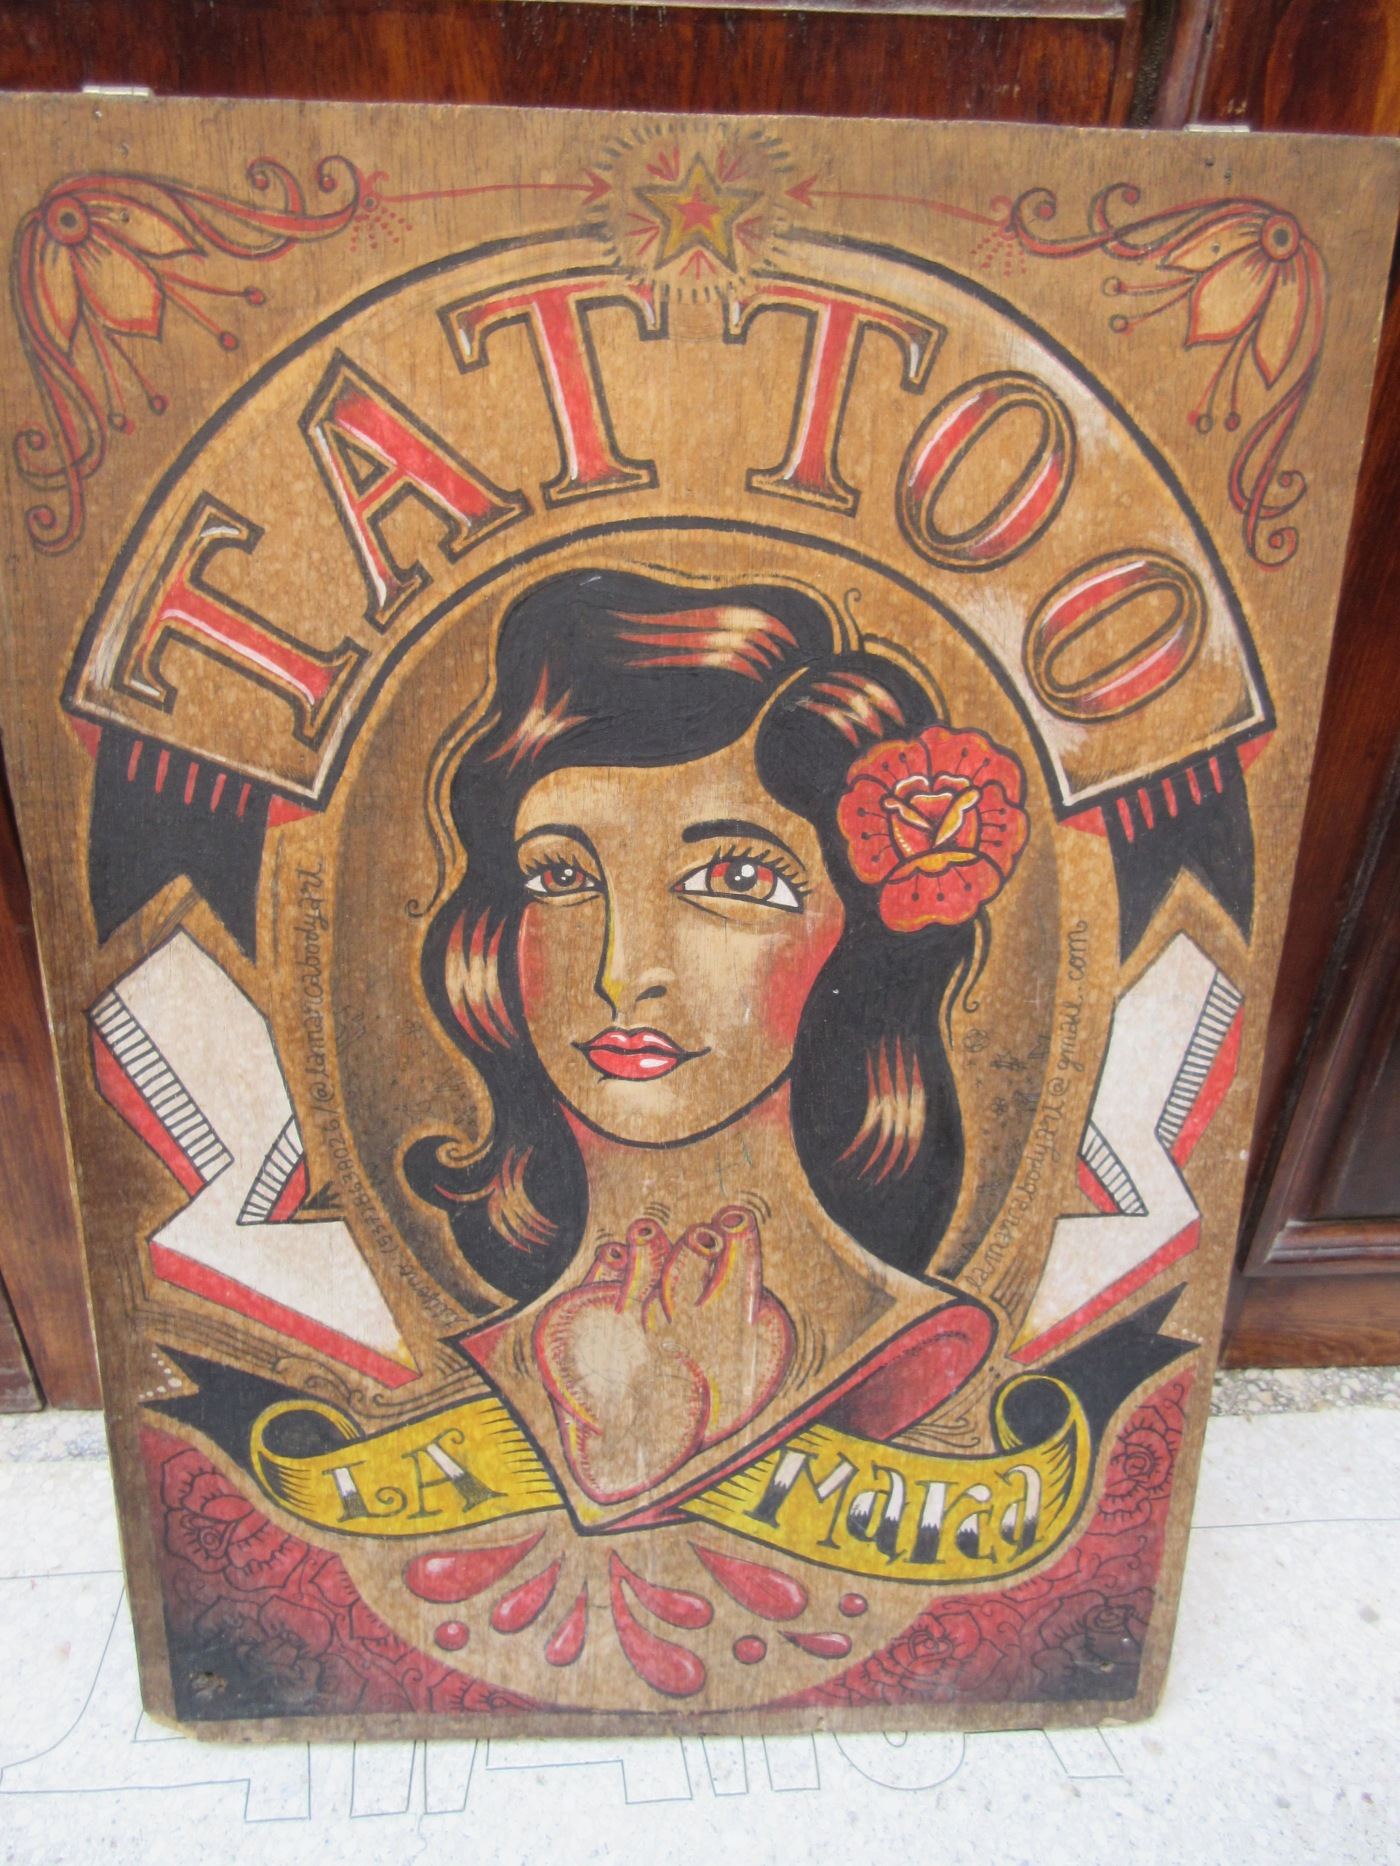 La Marca Tattoo Shop and Art Gallery in Old Havana (Habana Vieja), Cuba